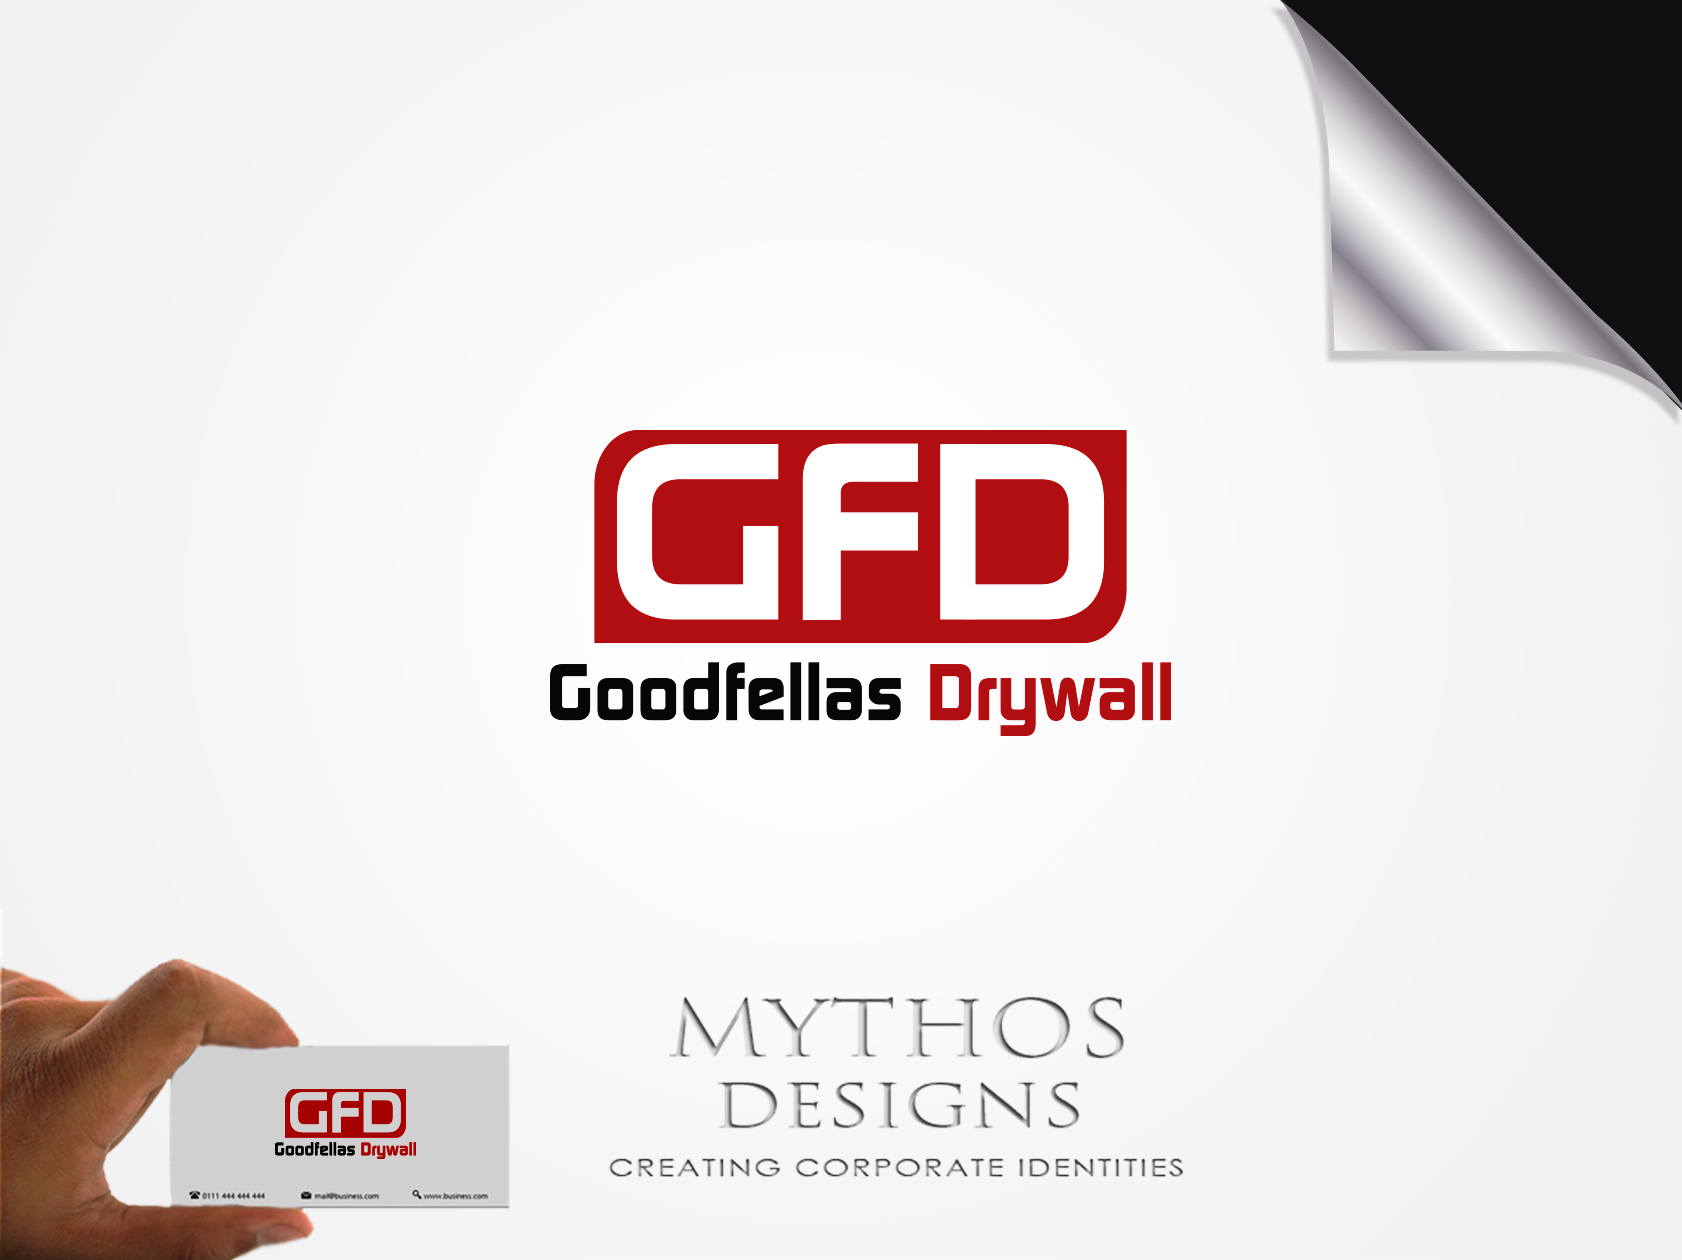 Logo Design by Mythos Designs - Entry No. 89 in the Logo Design Contest Creative Logo Design for Goodfellas Drywall.